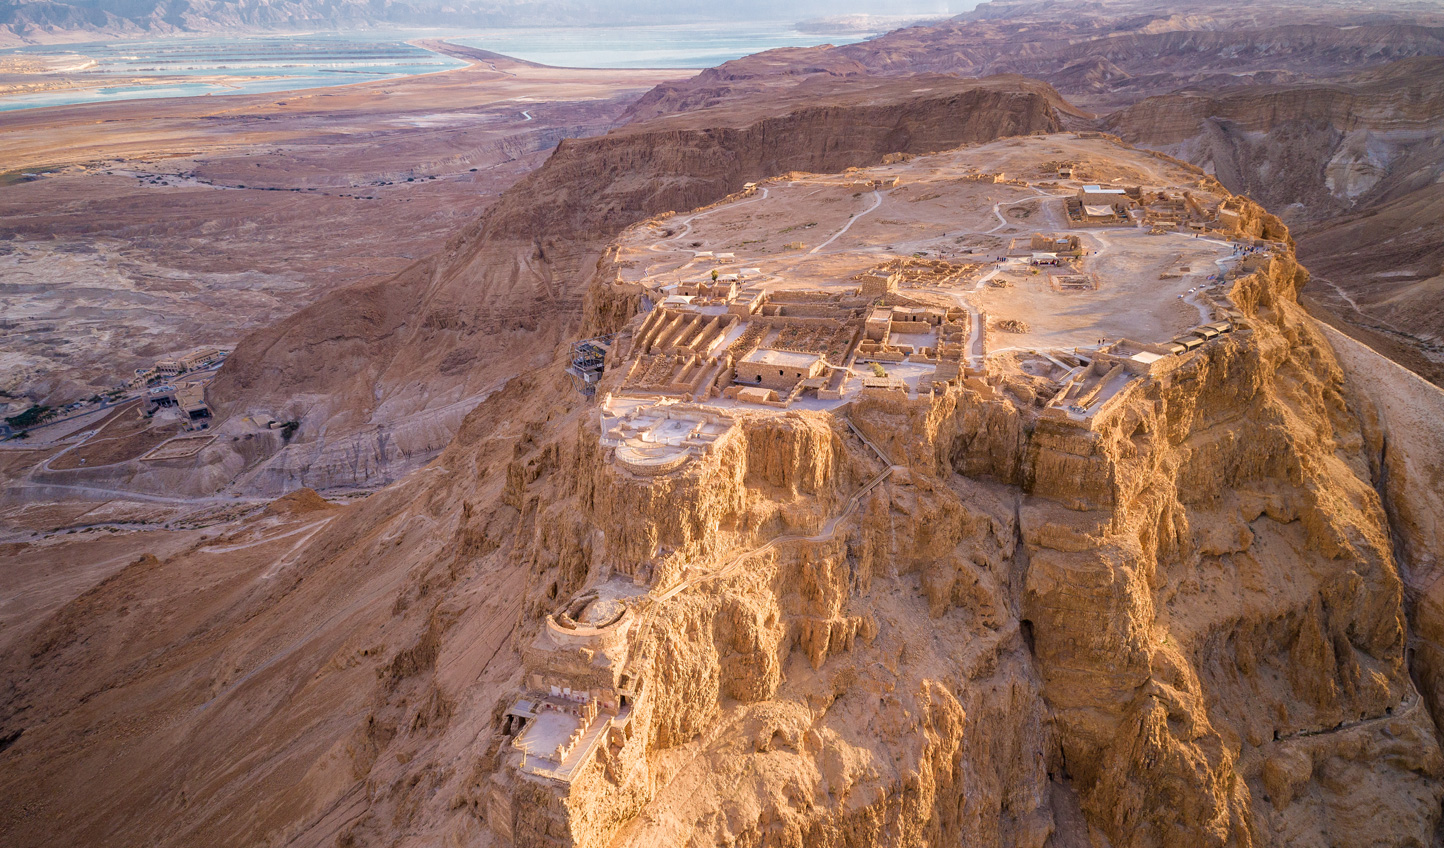 Hear the heroic tales of Israel's last Jewish resisters to Roman rule at Masada